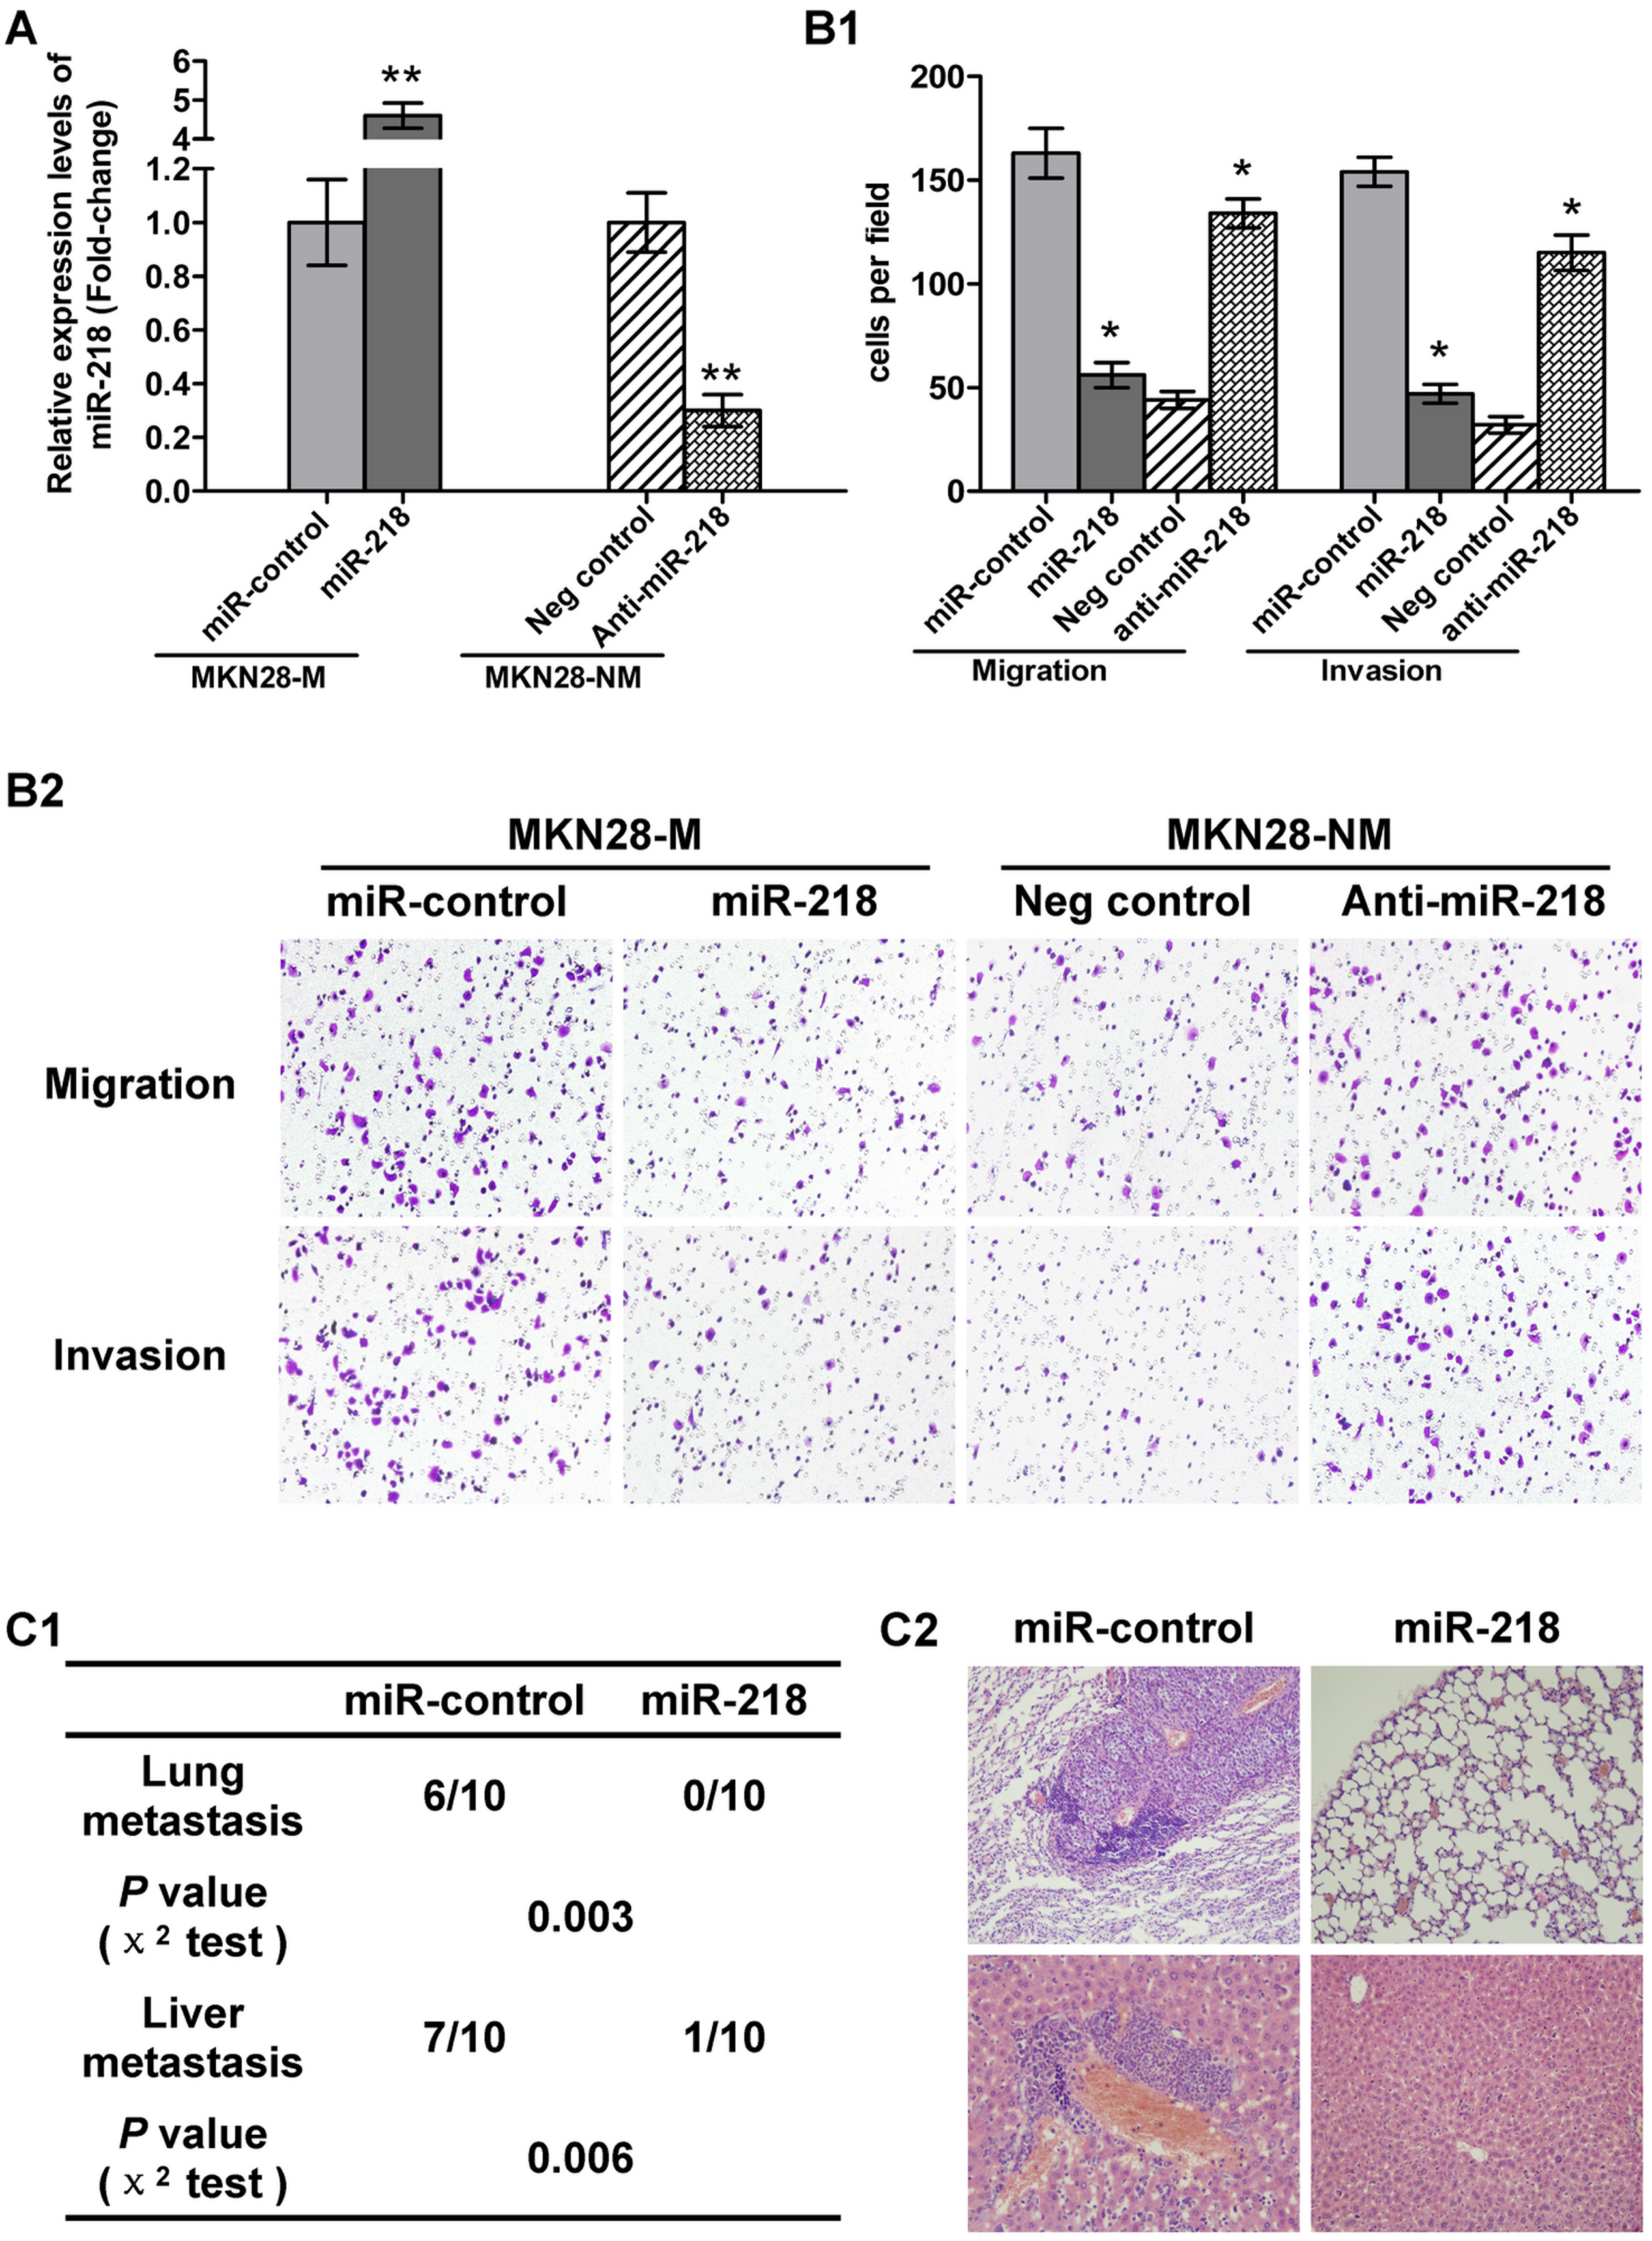 miR-218 suppressed tumor cell invasion and metastasis.